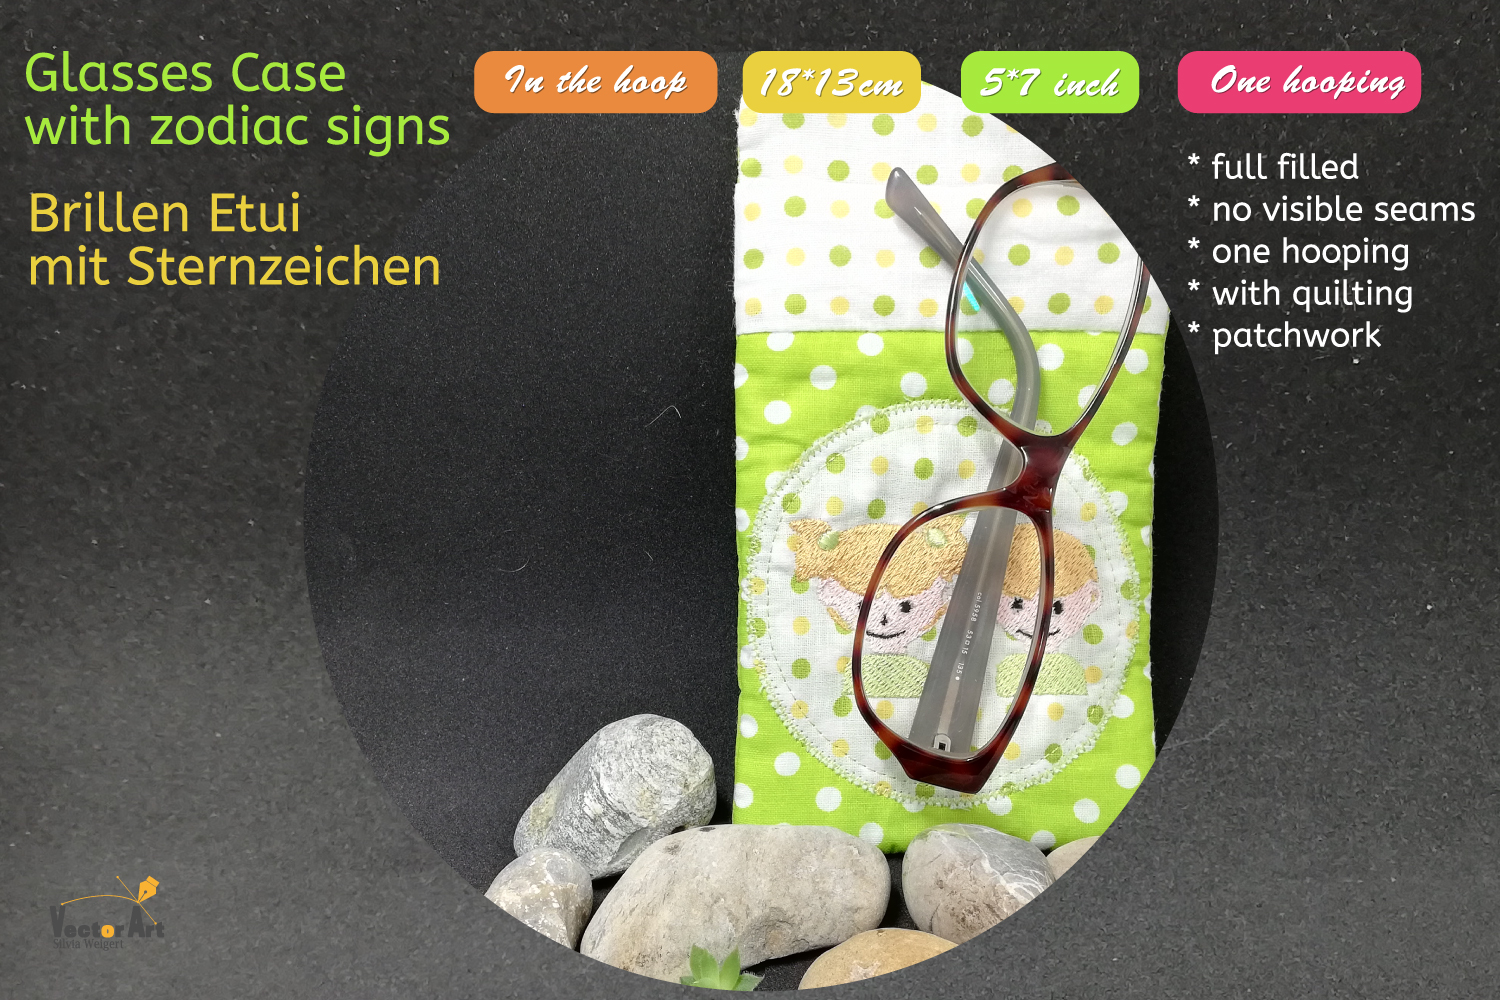 ITH - Glasses Case with Zodiac sign Gemini - Embroidery file example image 5